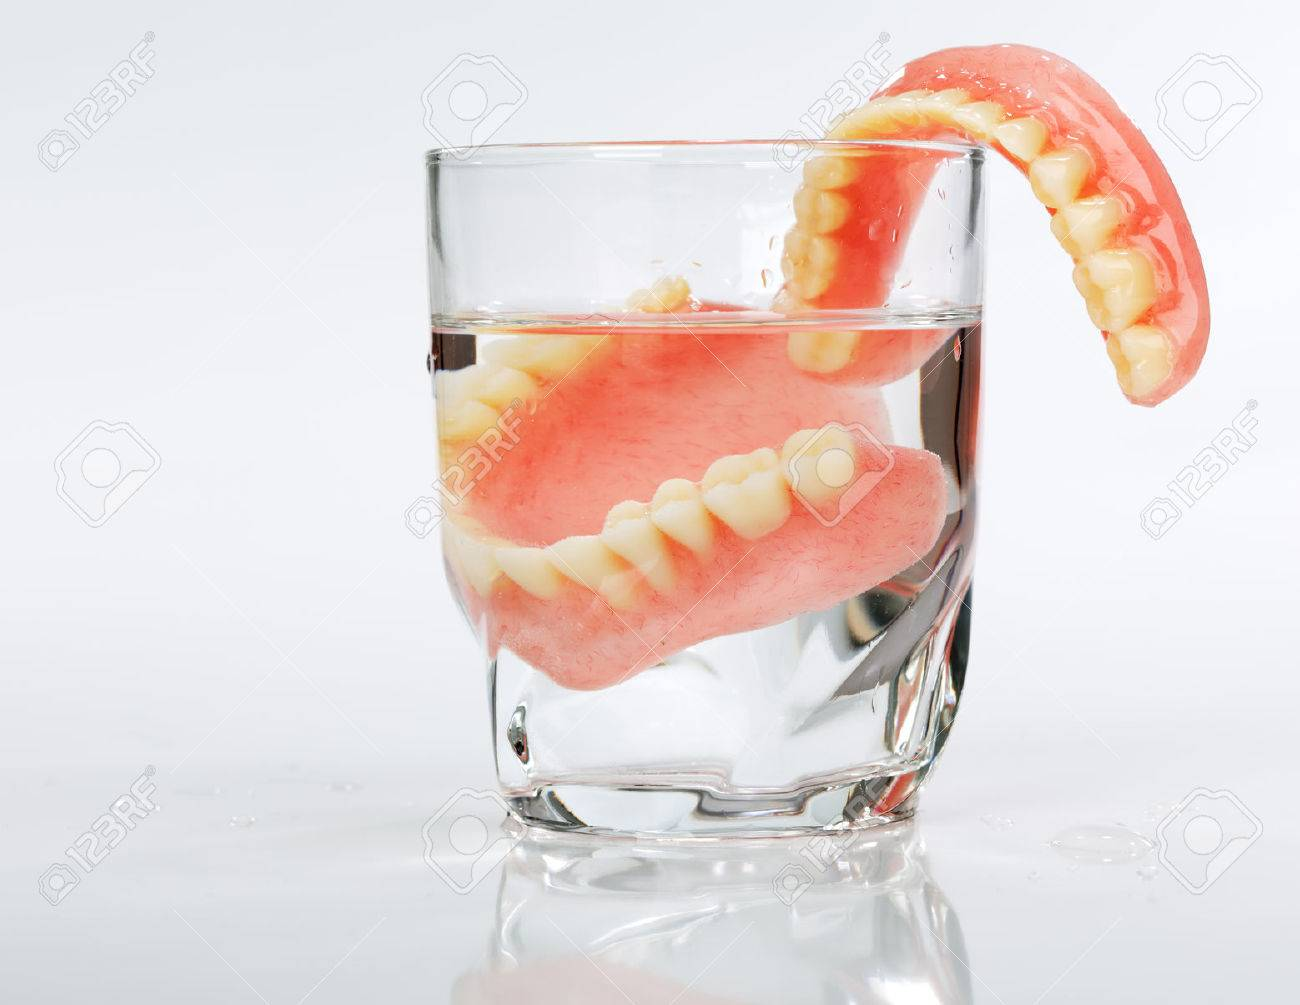 A Set Of Dentures In A Glass Of Water On A White Background Stock Photo,  Picture And Royalty Free Image. Image 26352319.